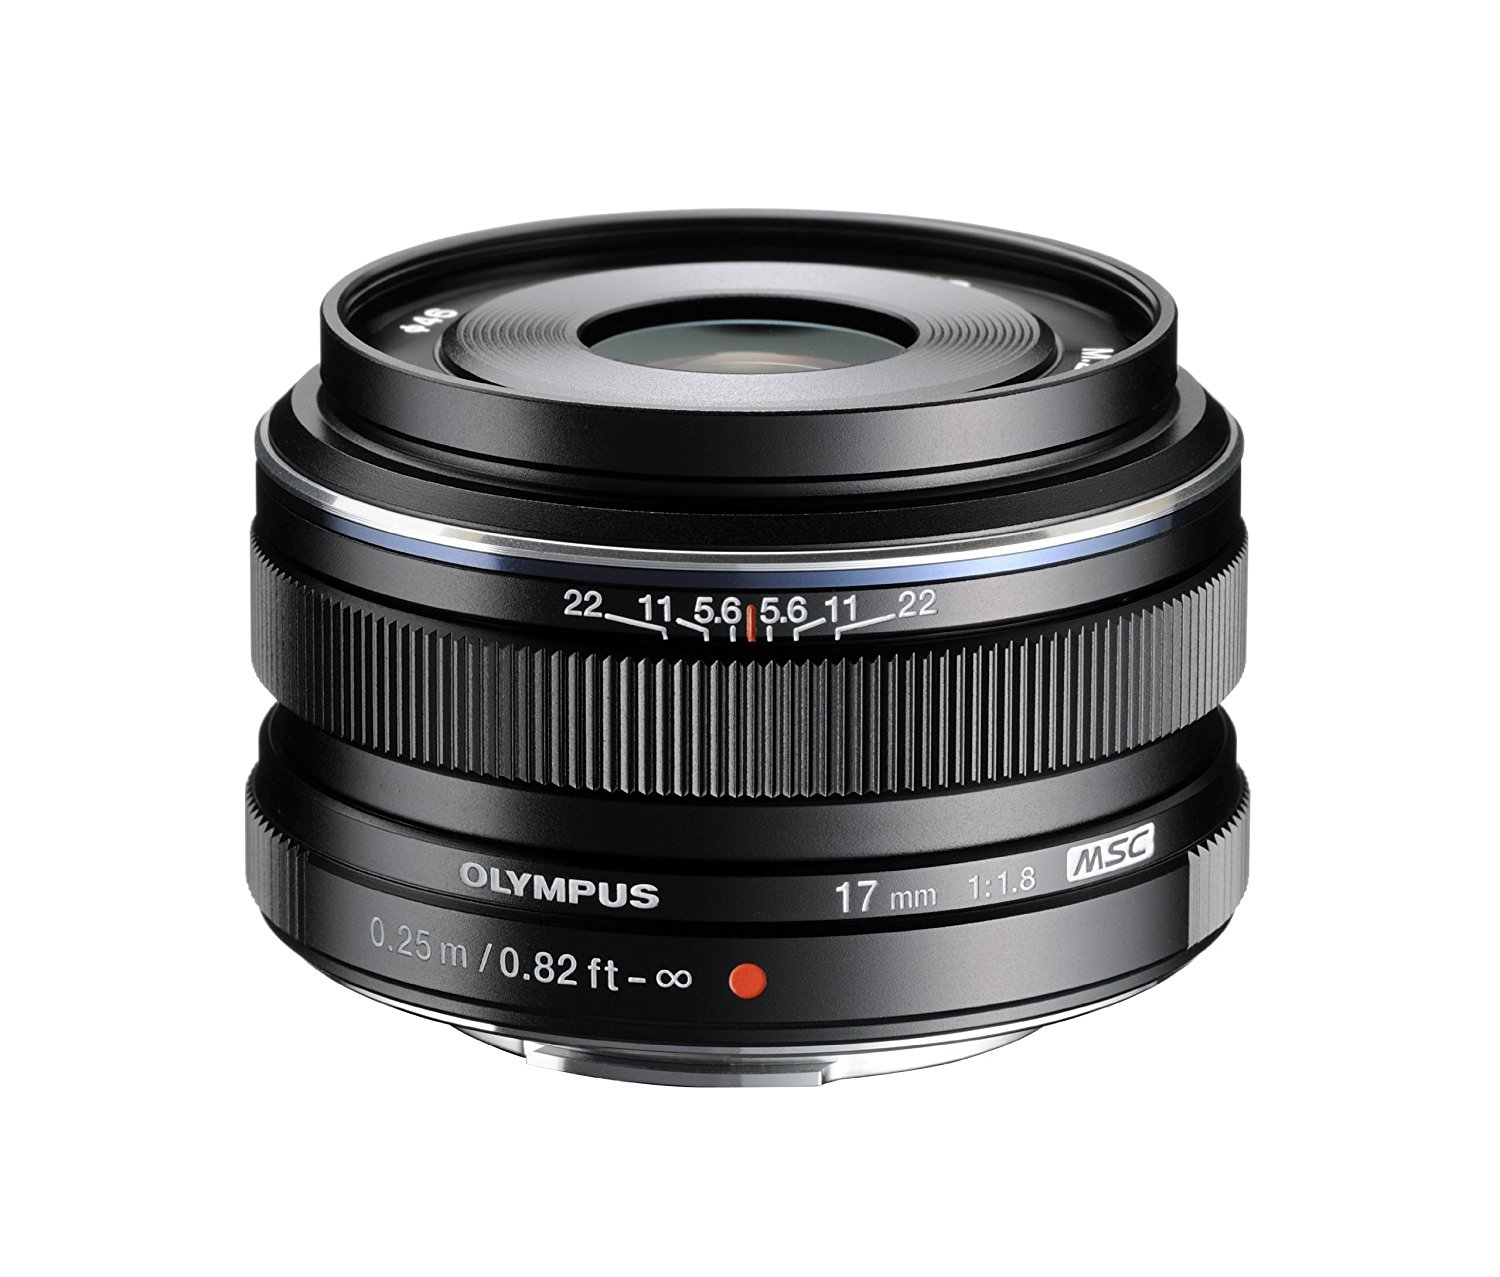 Olympus M.Zuiko 17mm f1.8 - Lens for Street Photography